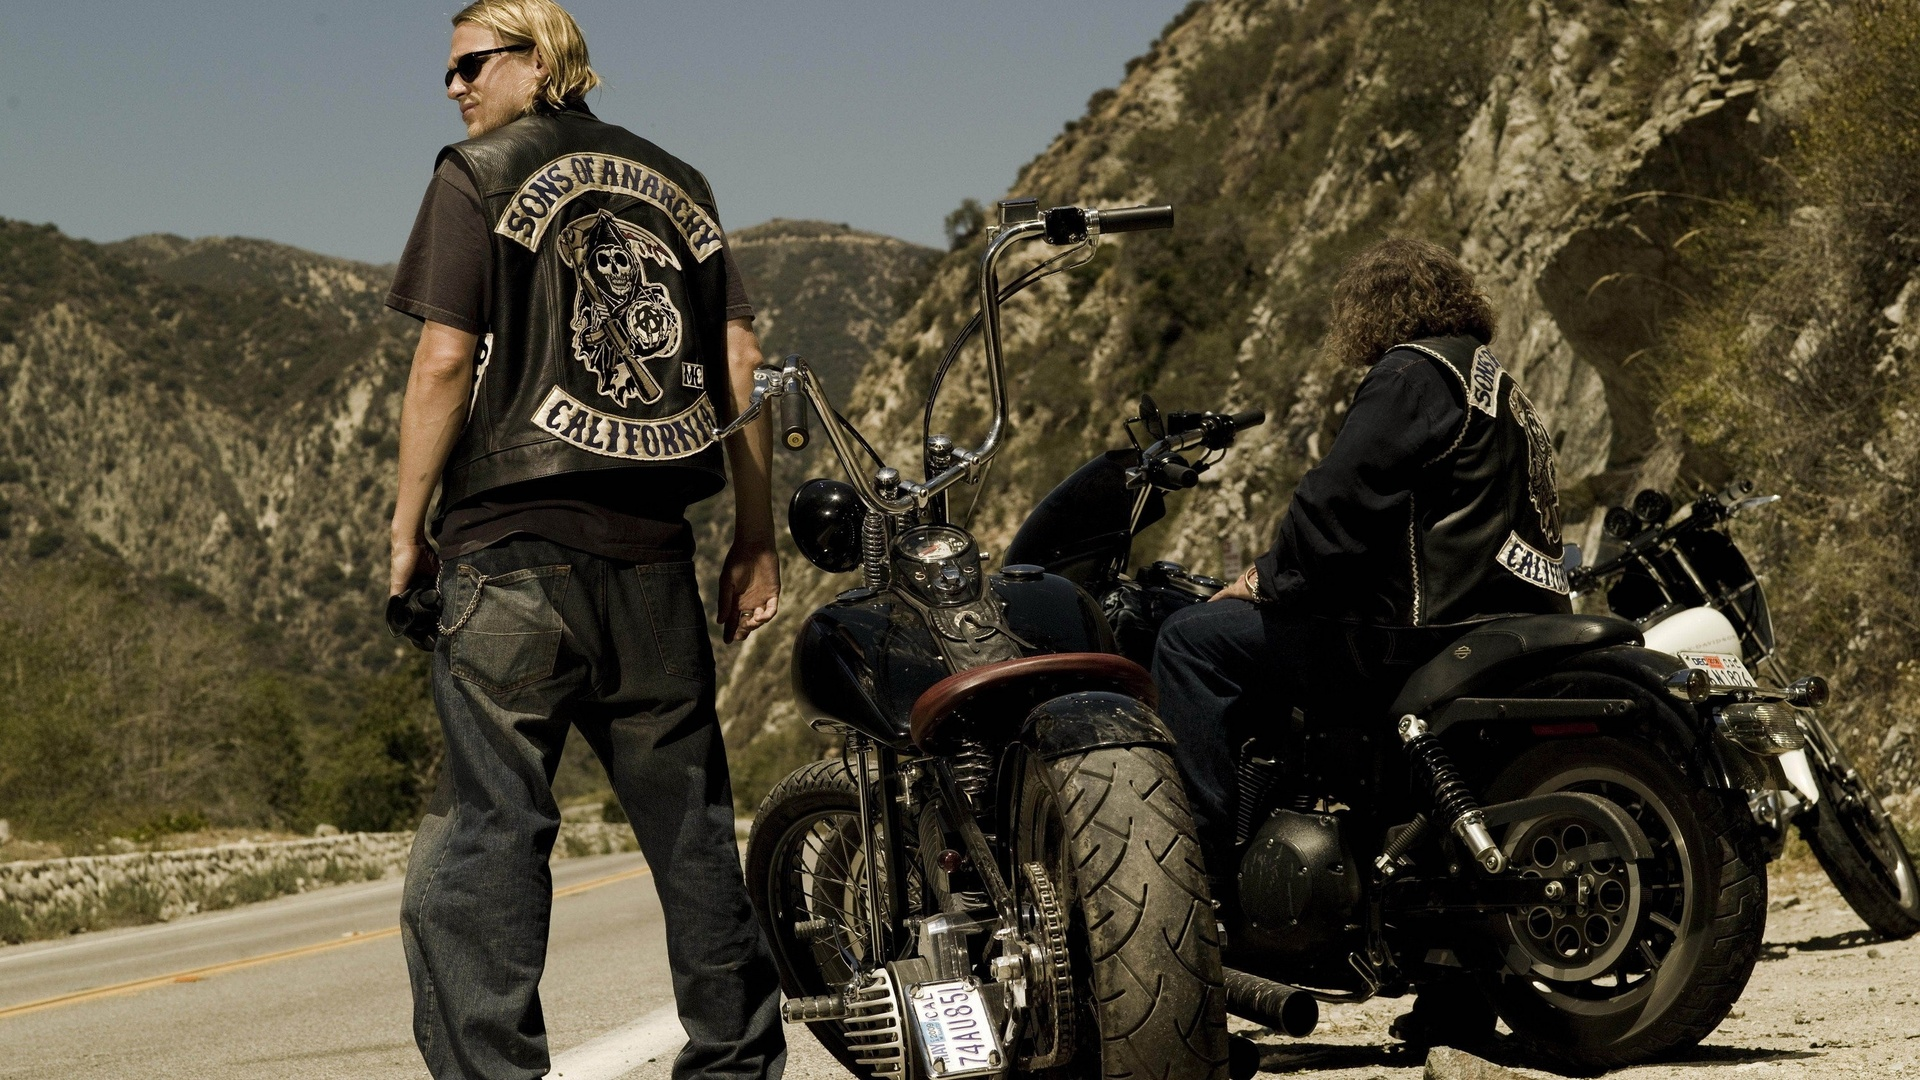 Sons of Anarchy Items | Sons of Anarchy Bikes | Jax Sons of Anarchy Bike